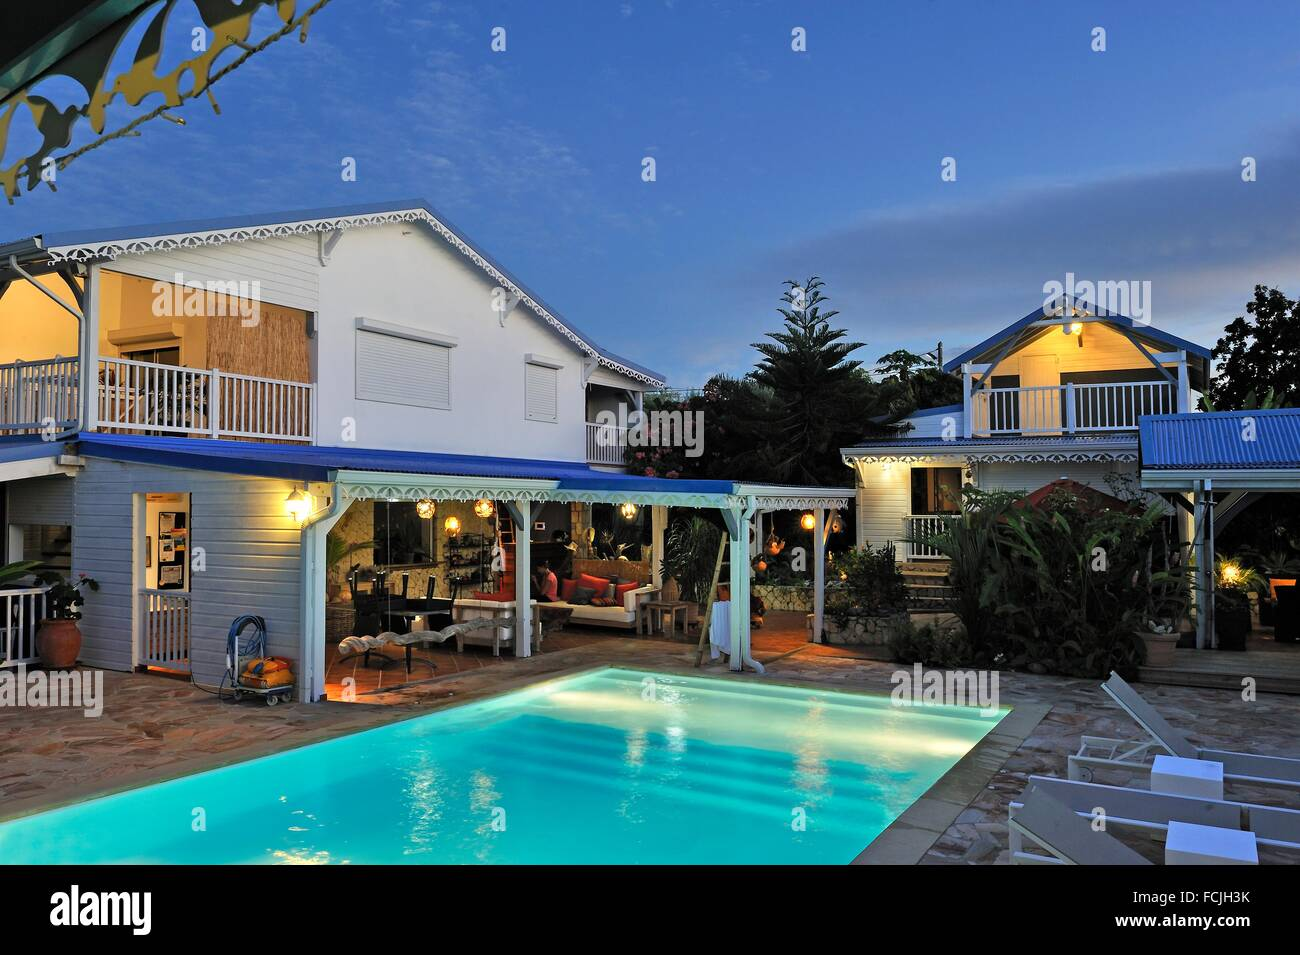 La maison calebasse guesthouse and villas rental saint francois grande terre guadeloupe overseas region of france